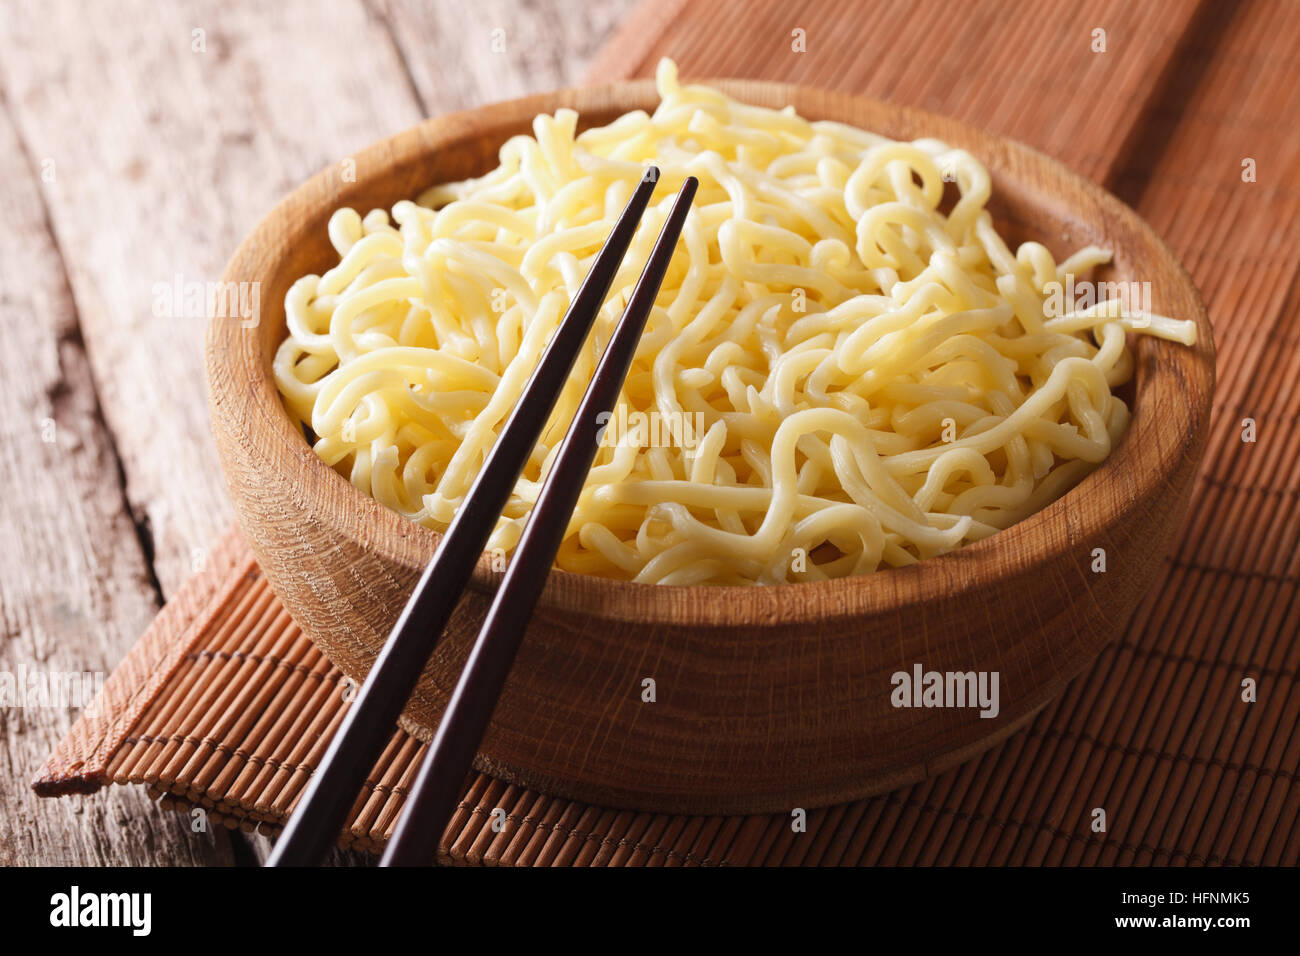 Asian fast food: Ramen in a wooden bowl on the table close-up. horizontal Stock Photo